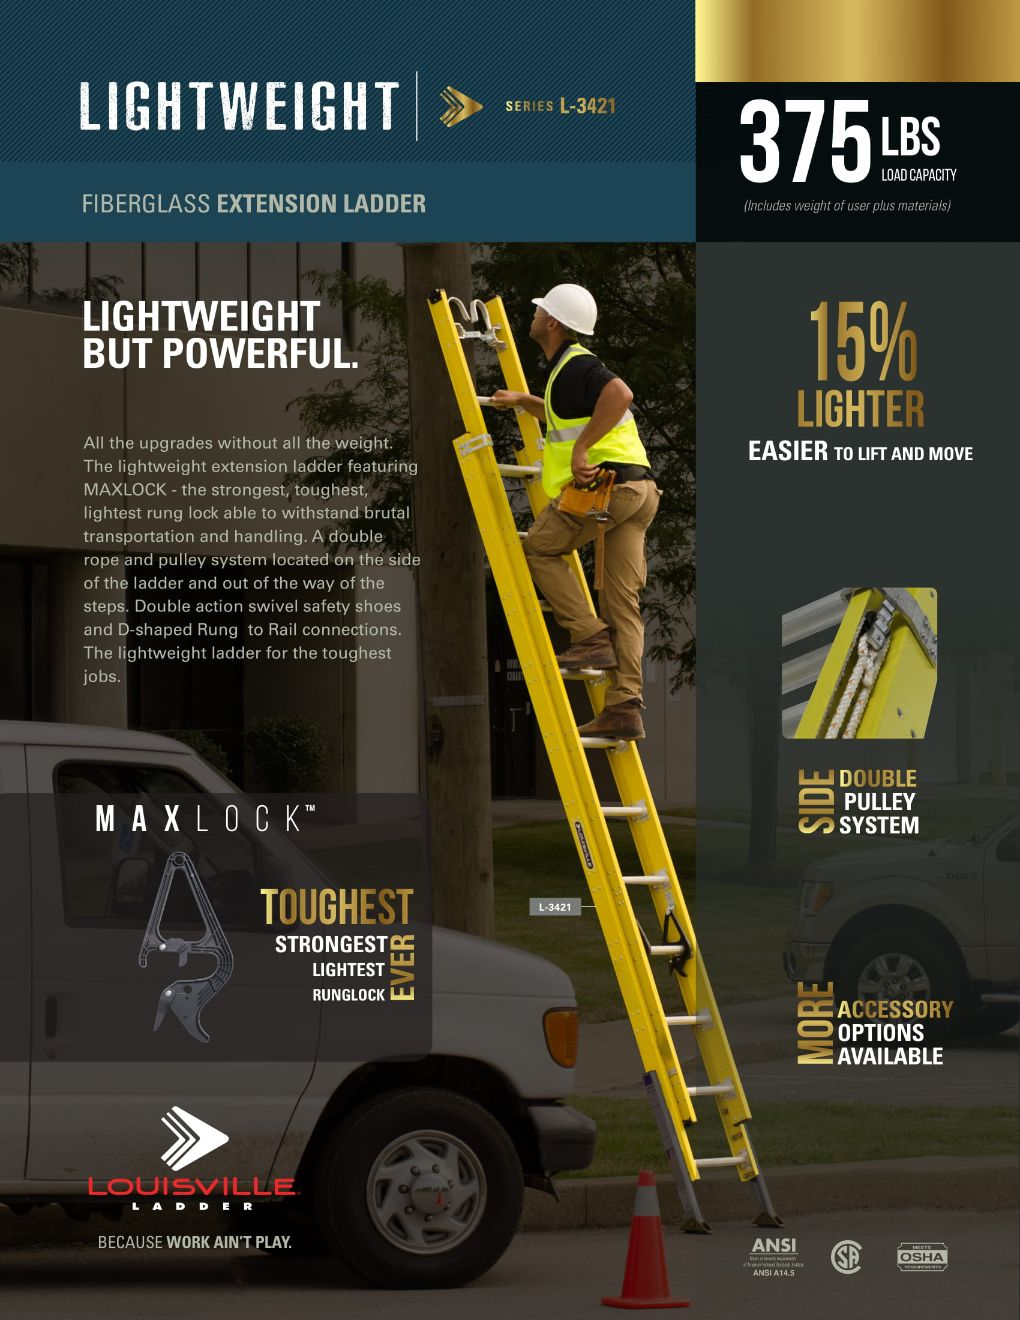 L-3421 Light Weight Extension Ladder Flyer and Spec Sheet Marketing Material Image